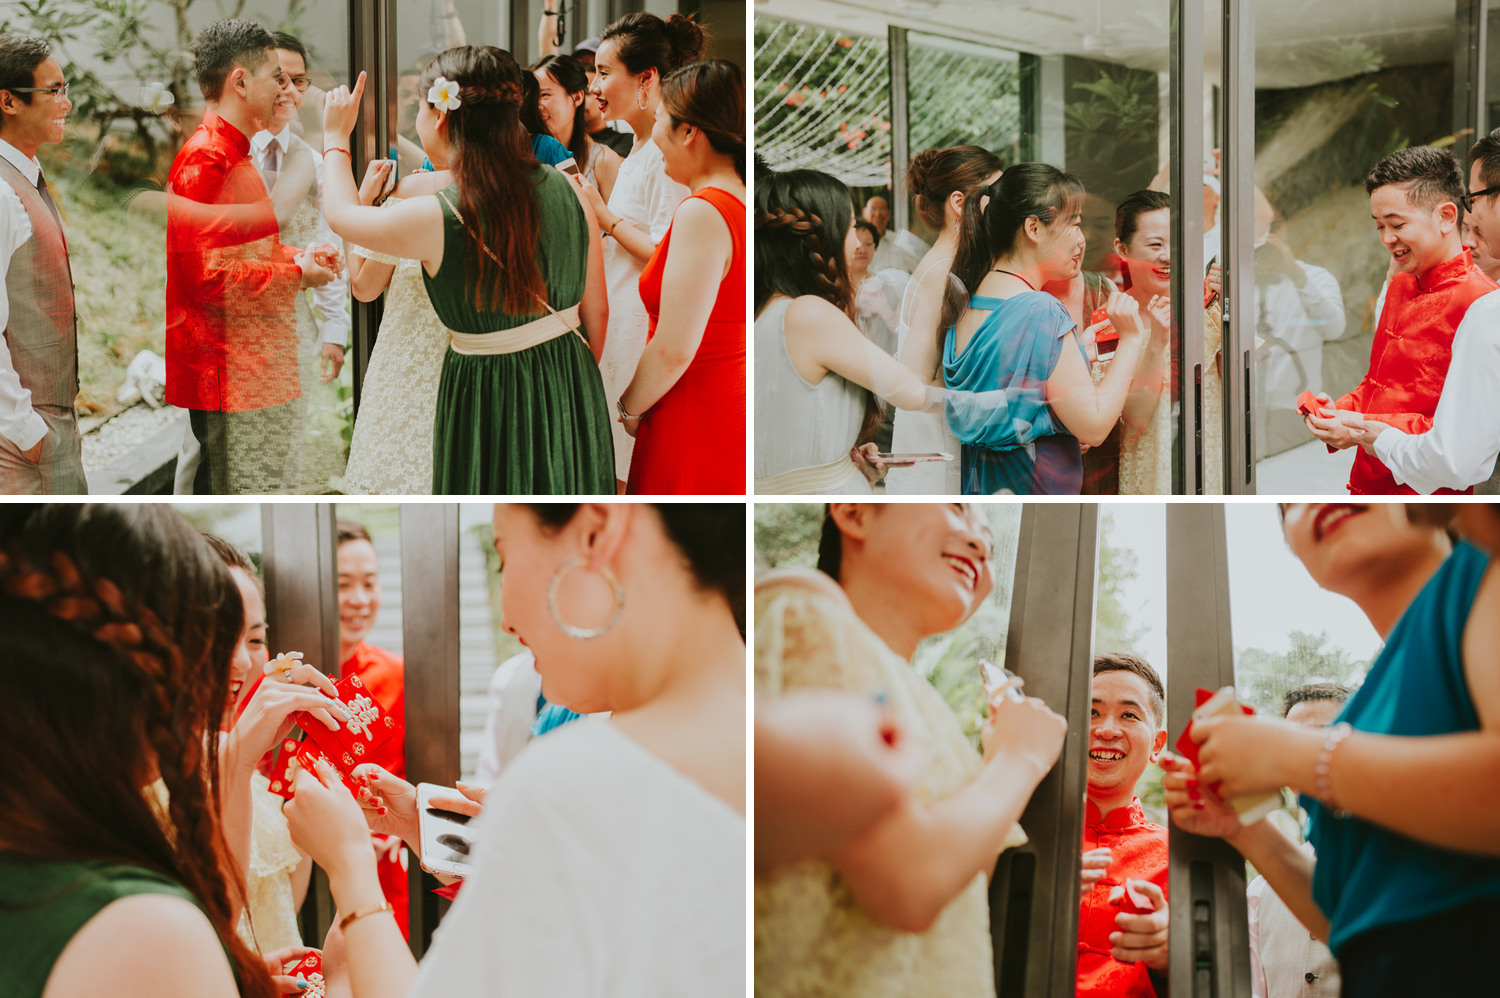 phuket wedding-diktatphotography-alex&andy wedding-32